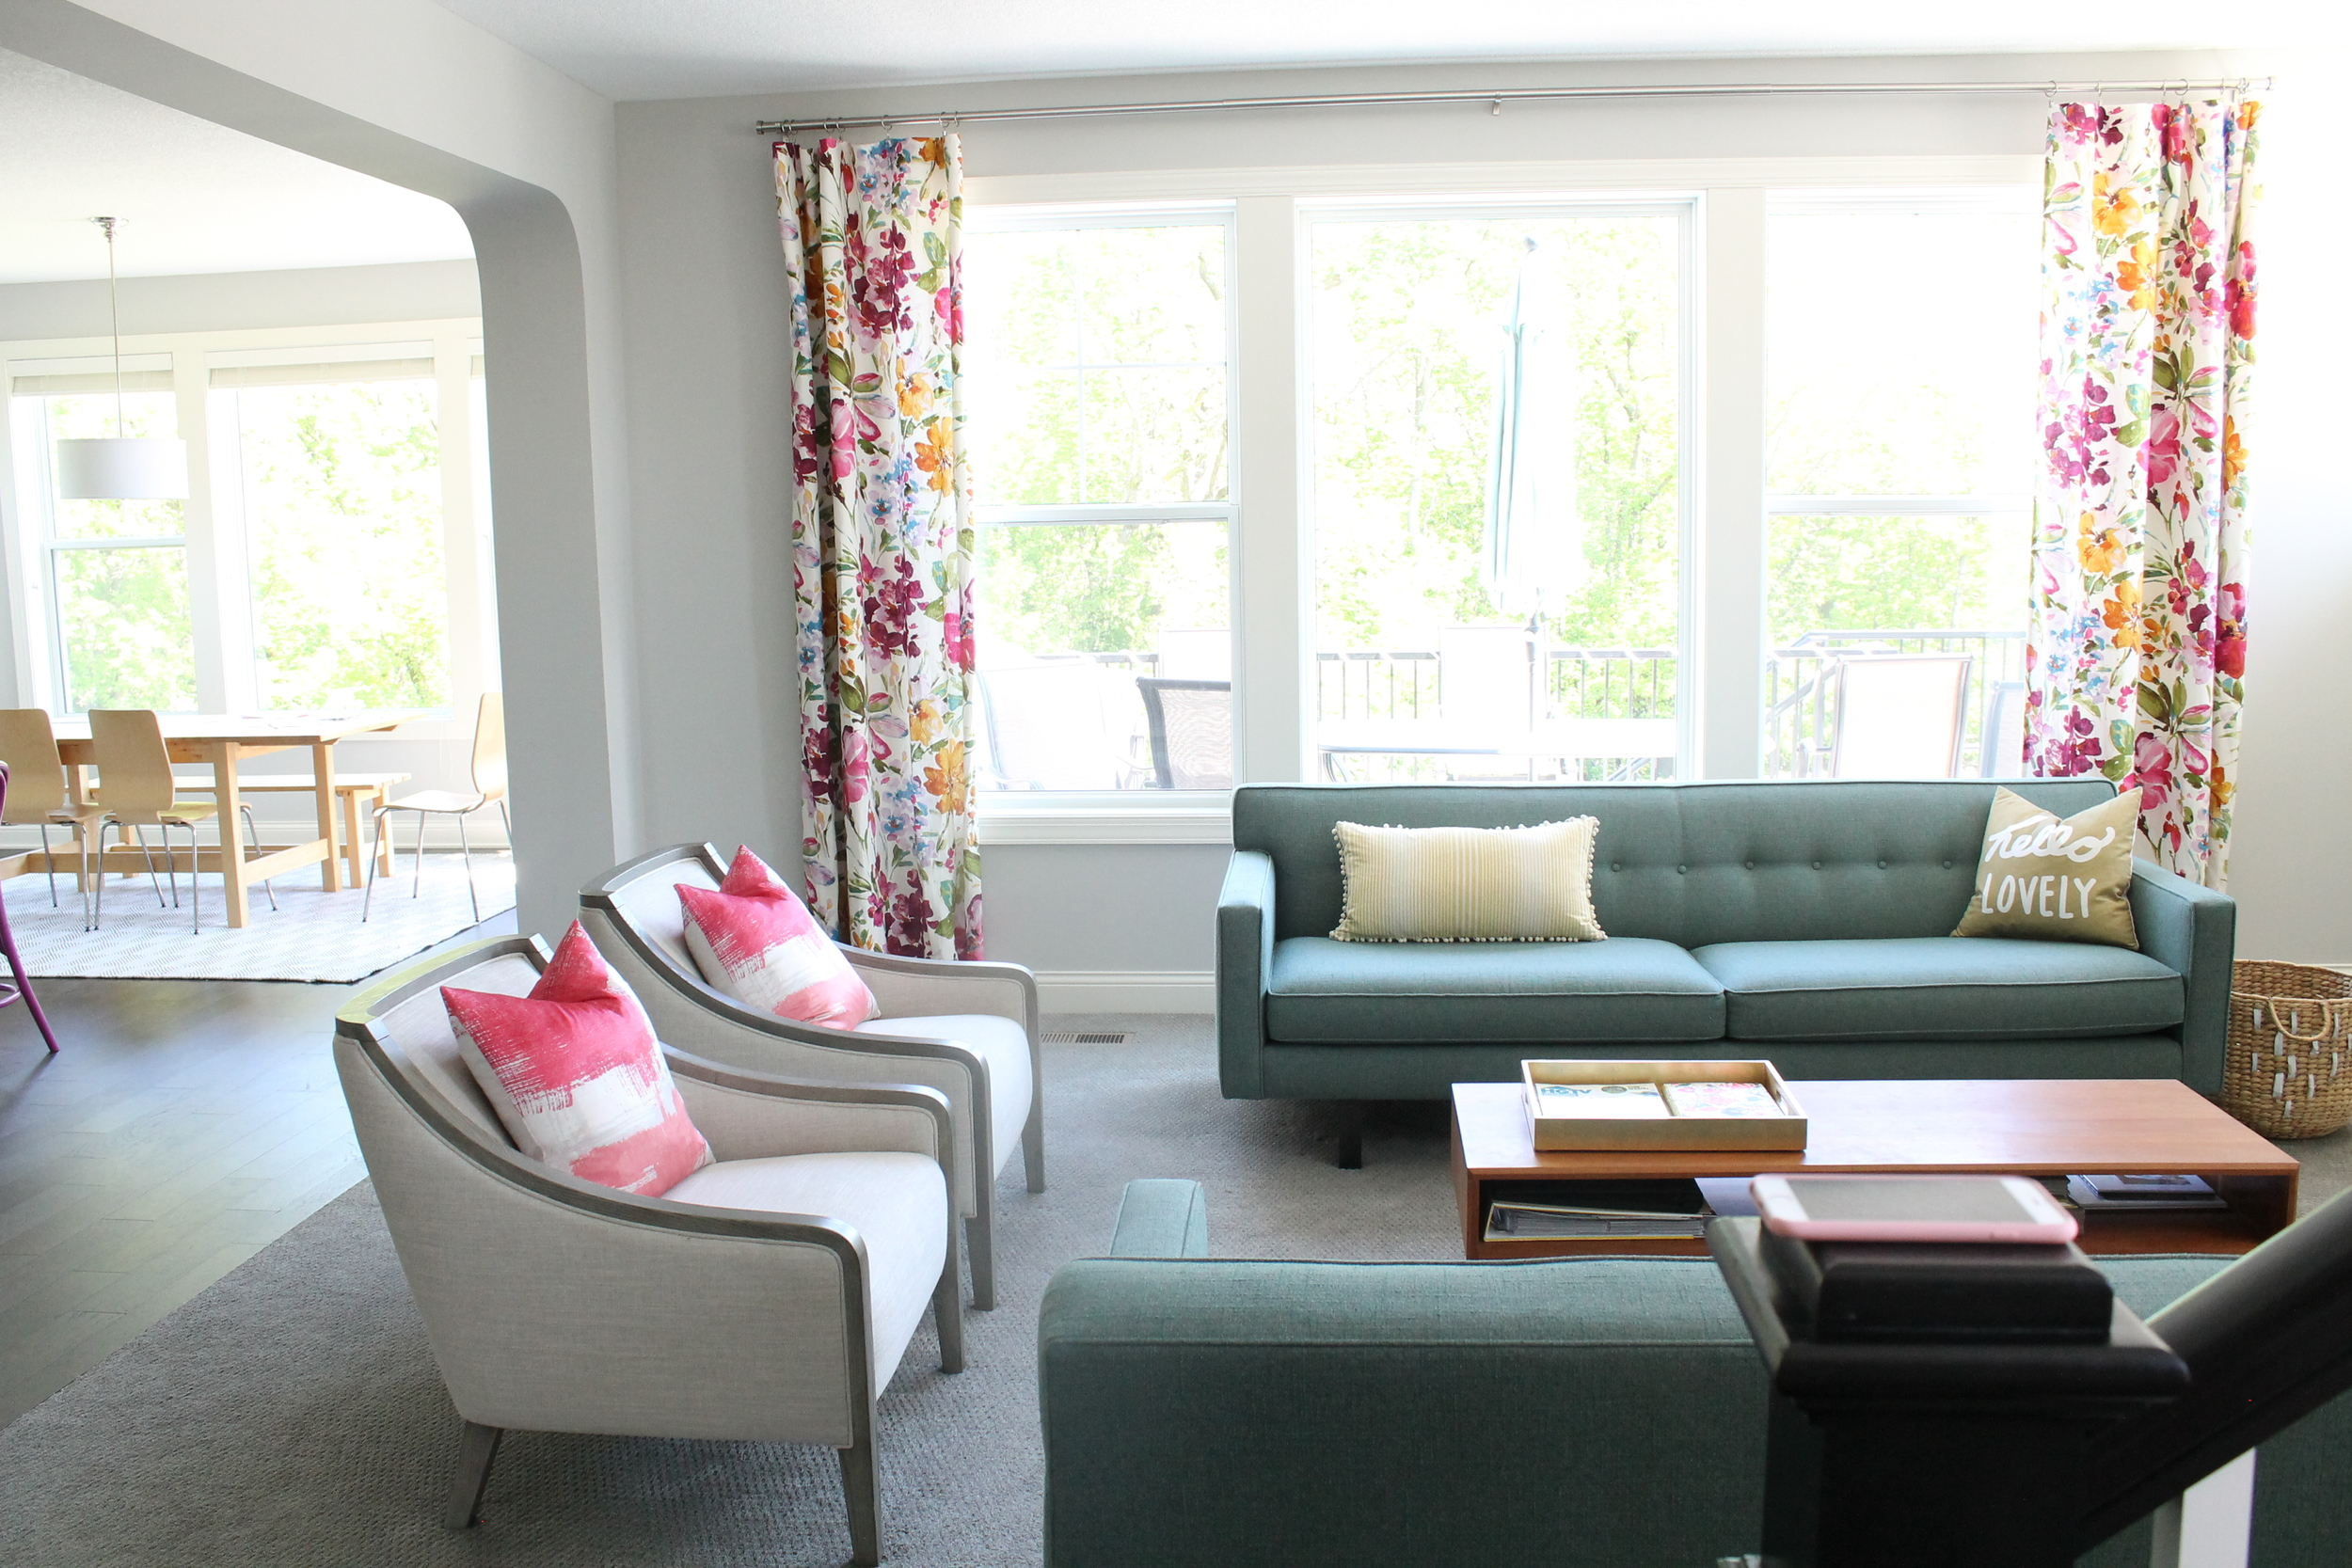 Family Room from Tessie Fay. Love the floral curtains and pops of color.